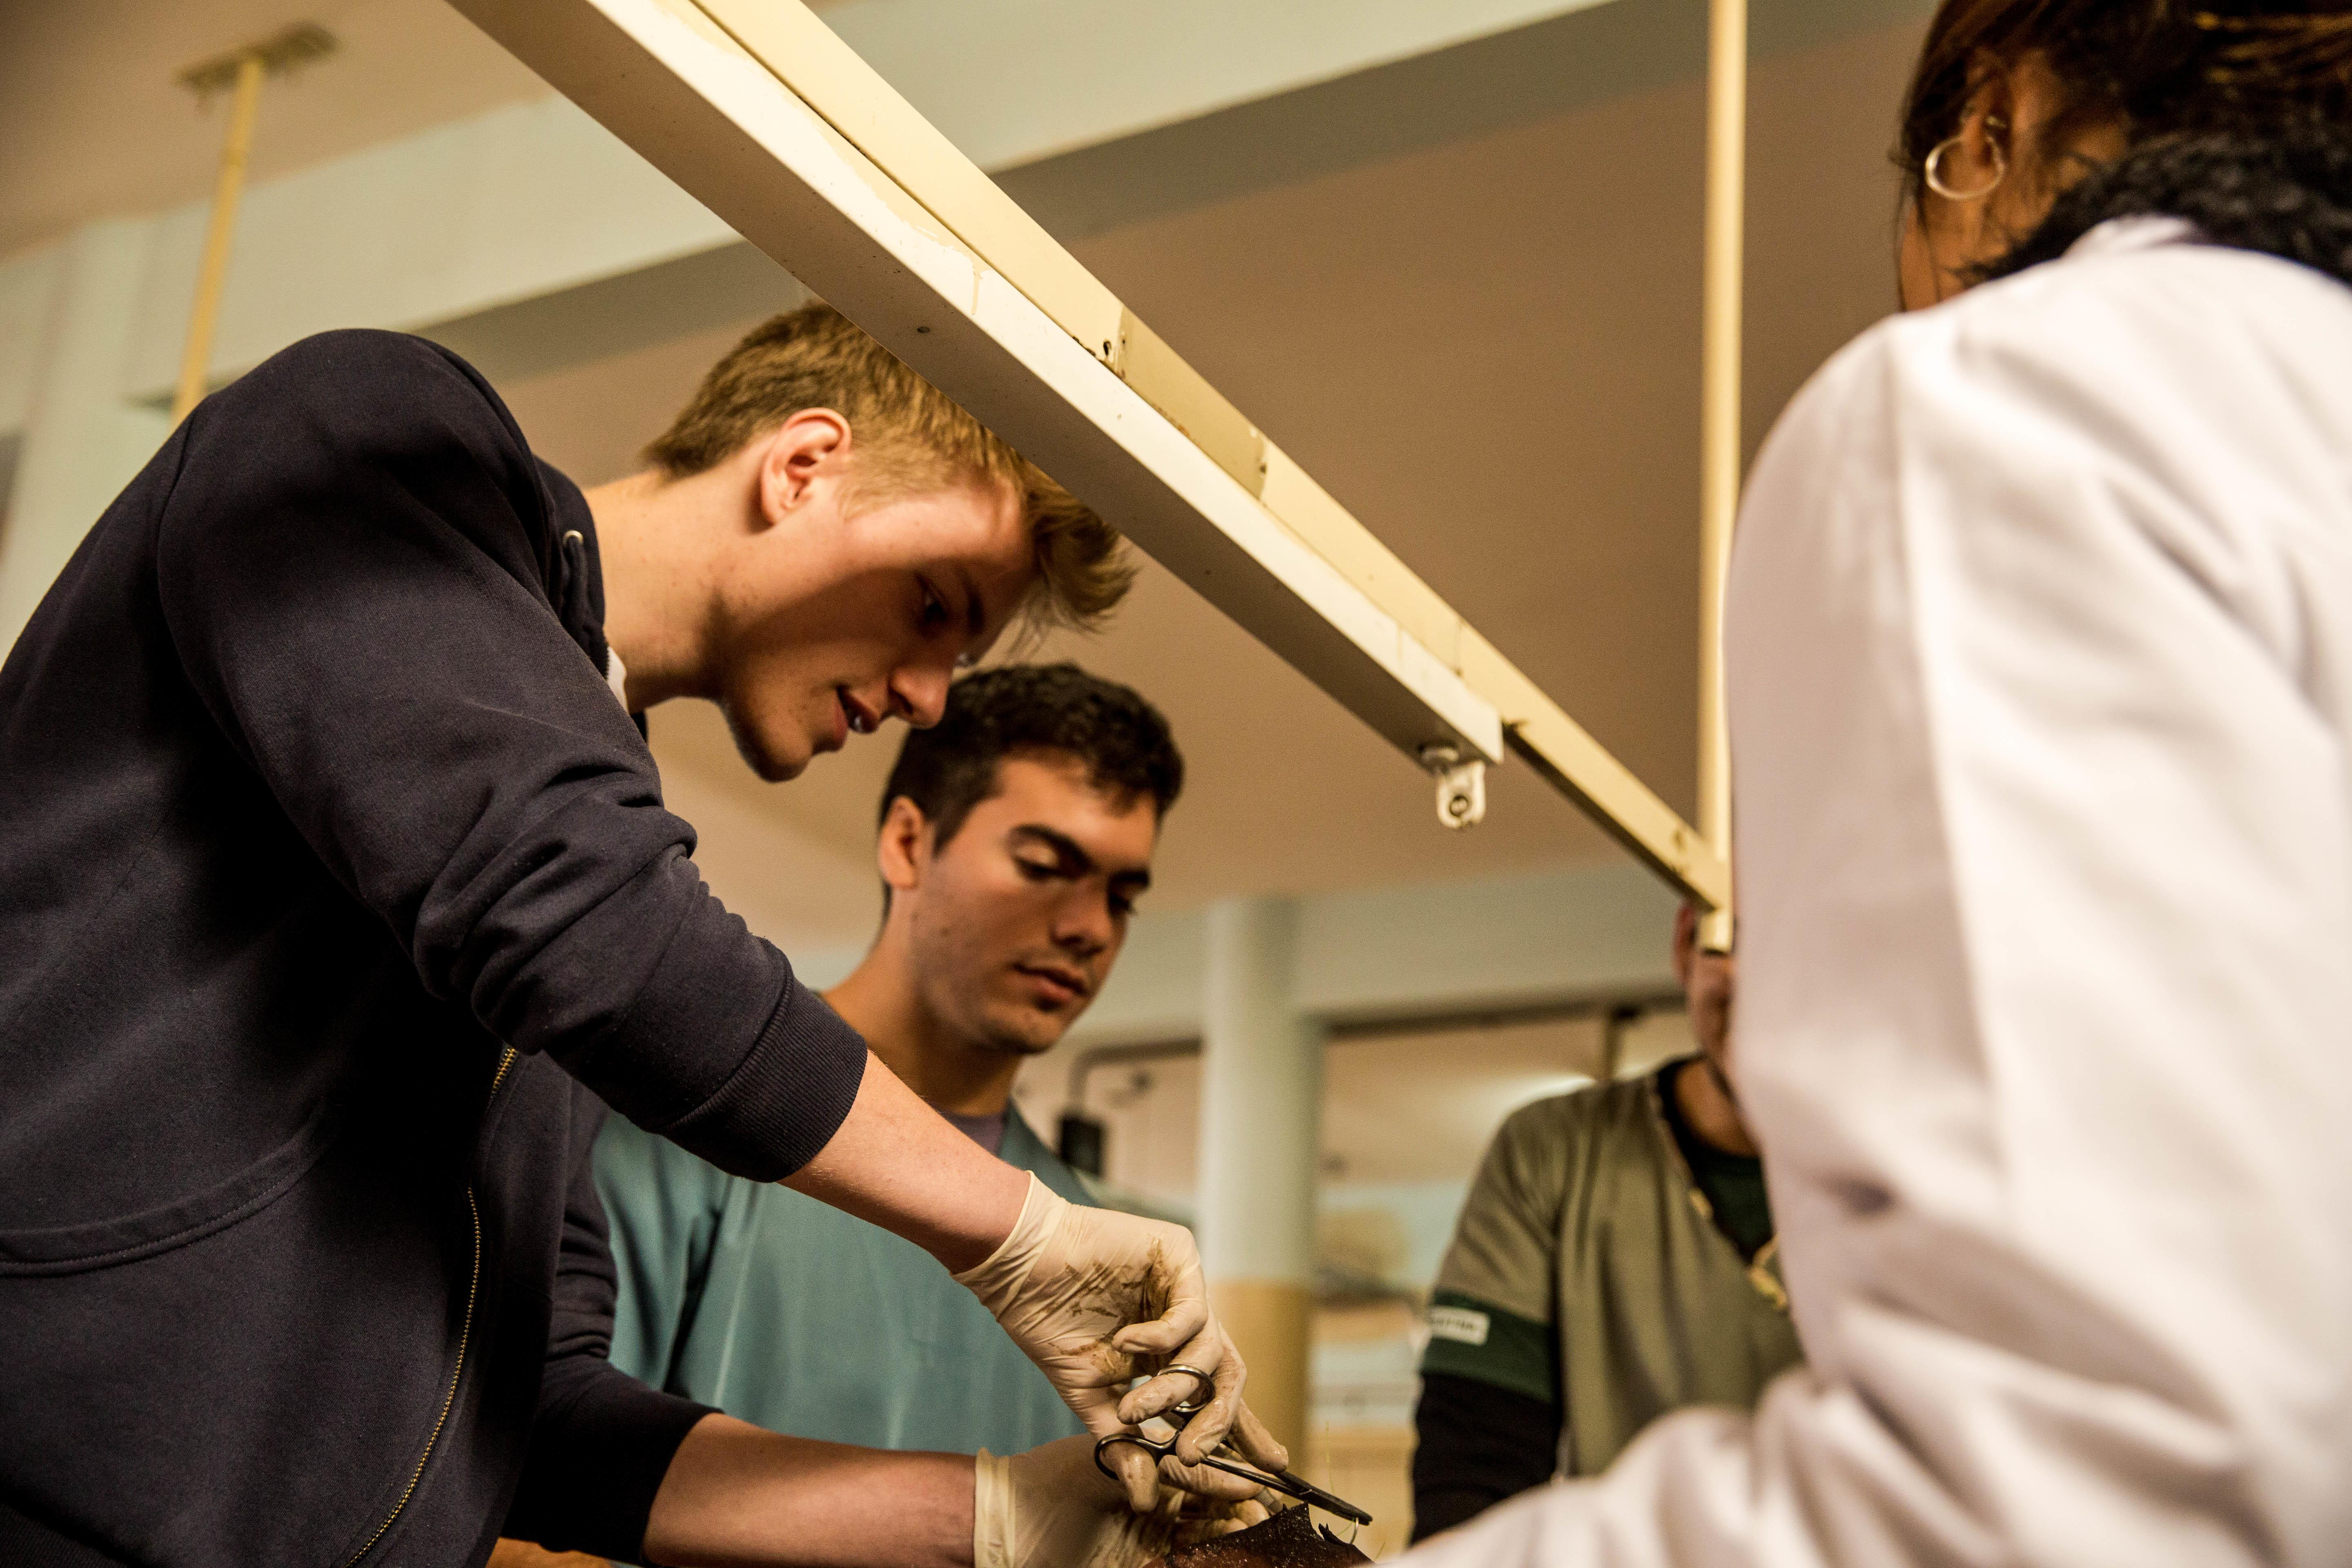 Male Medicine interns learn how to suture on a cadaver at a medical programme during their medical internship in Argentina.